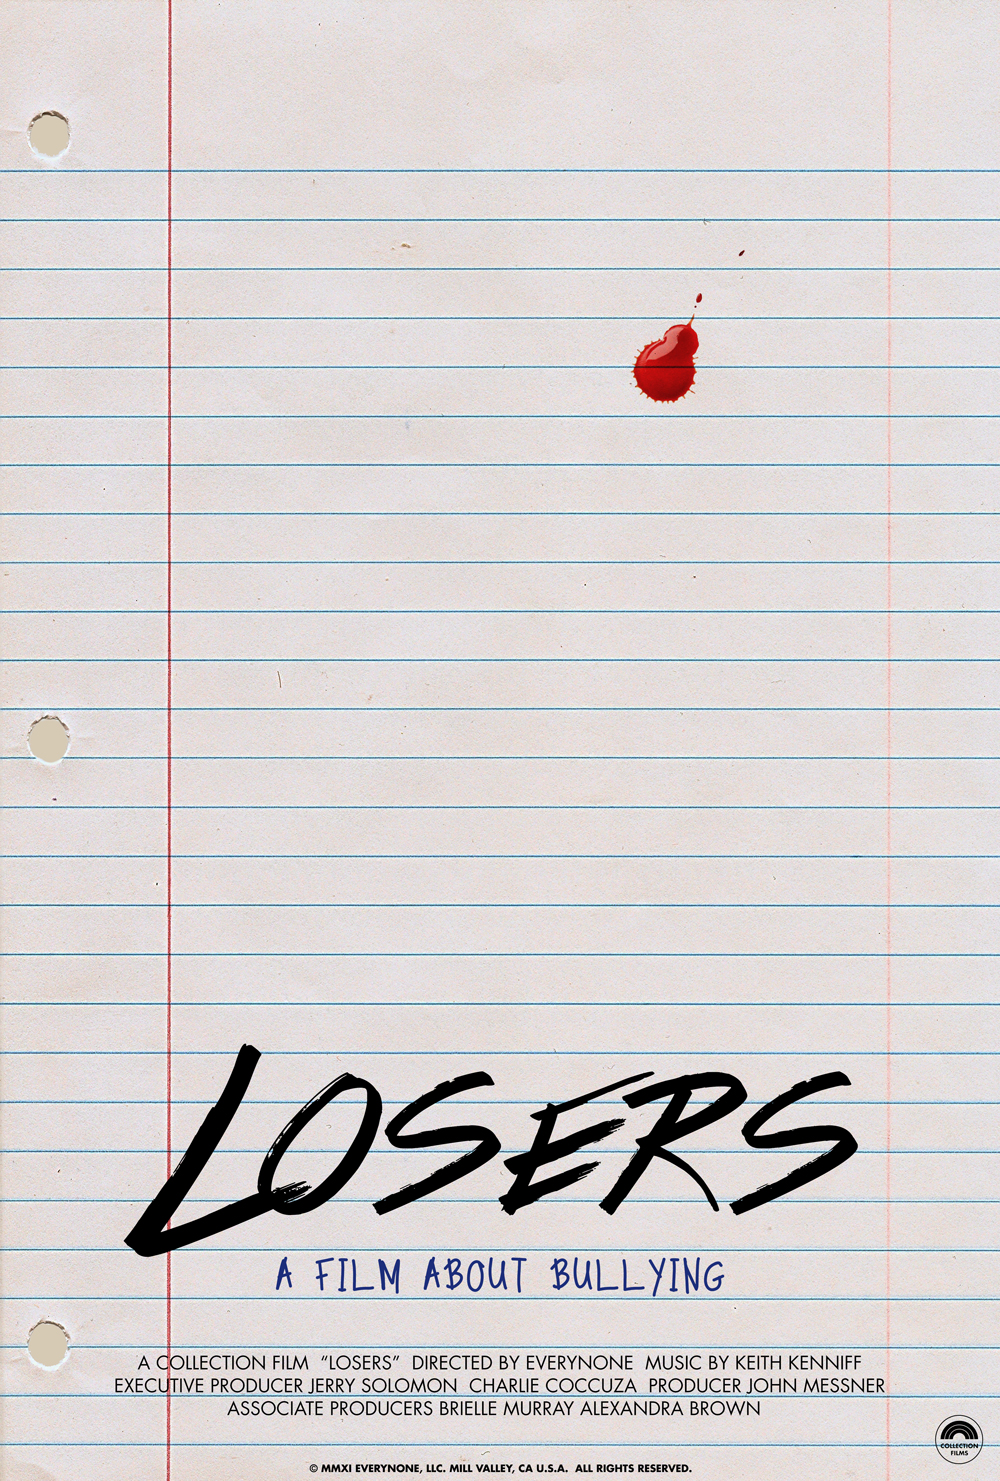 LOSERS  - A film about bullying.Credits:Made by EverynoneDirector/DP/Editor - Daniel MercadanteExecutive Producer: Jerry SolomonProducers: Jon Messner, Alexandra Brown, Brielle MurrayMusic - Keith KenniffFeatured: